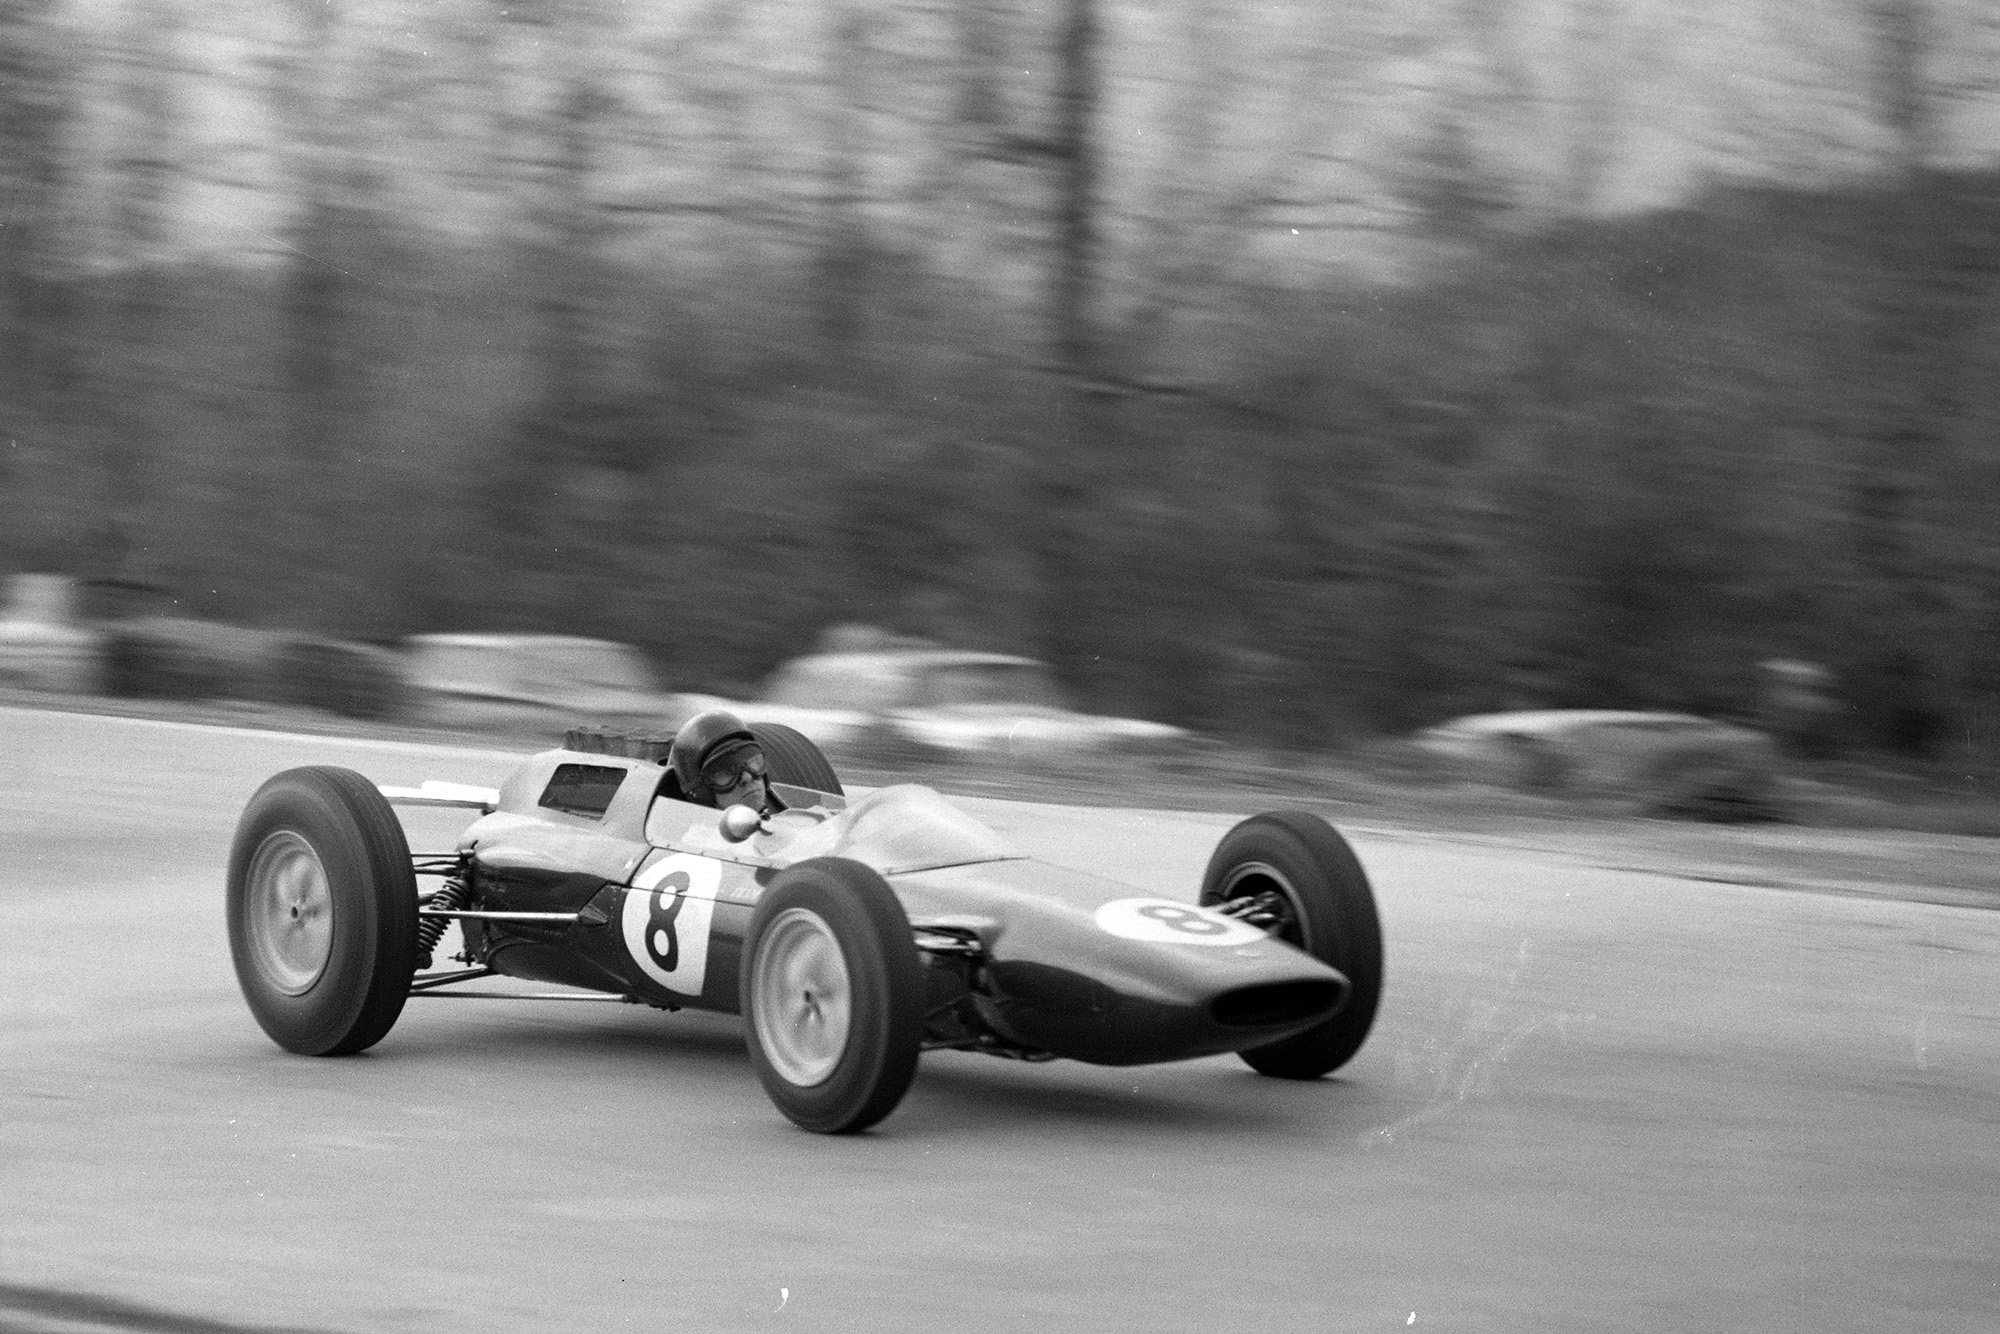 Jim Clark took his third win of the year for Lotus